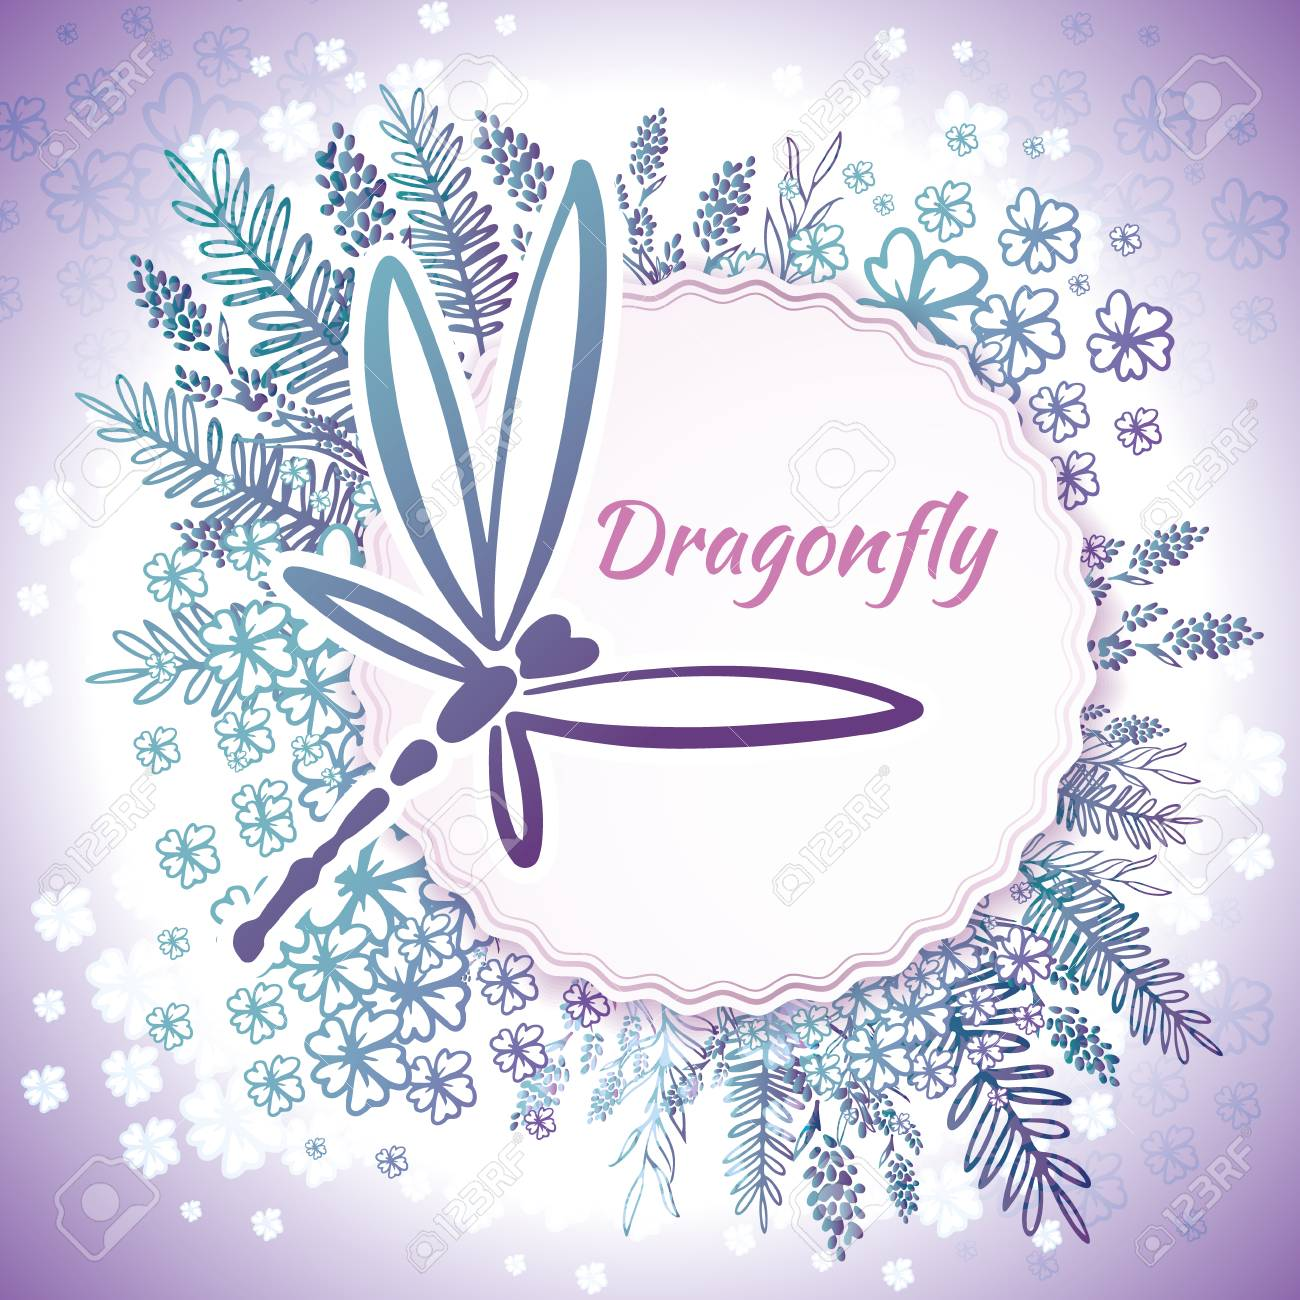 Vector botanical banners with dragonfly and flowers. Floral design for natural cosmetics, perfume, women products. Can be used as a greeting card, wedding invitation, spring background - 126378223